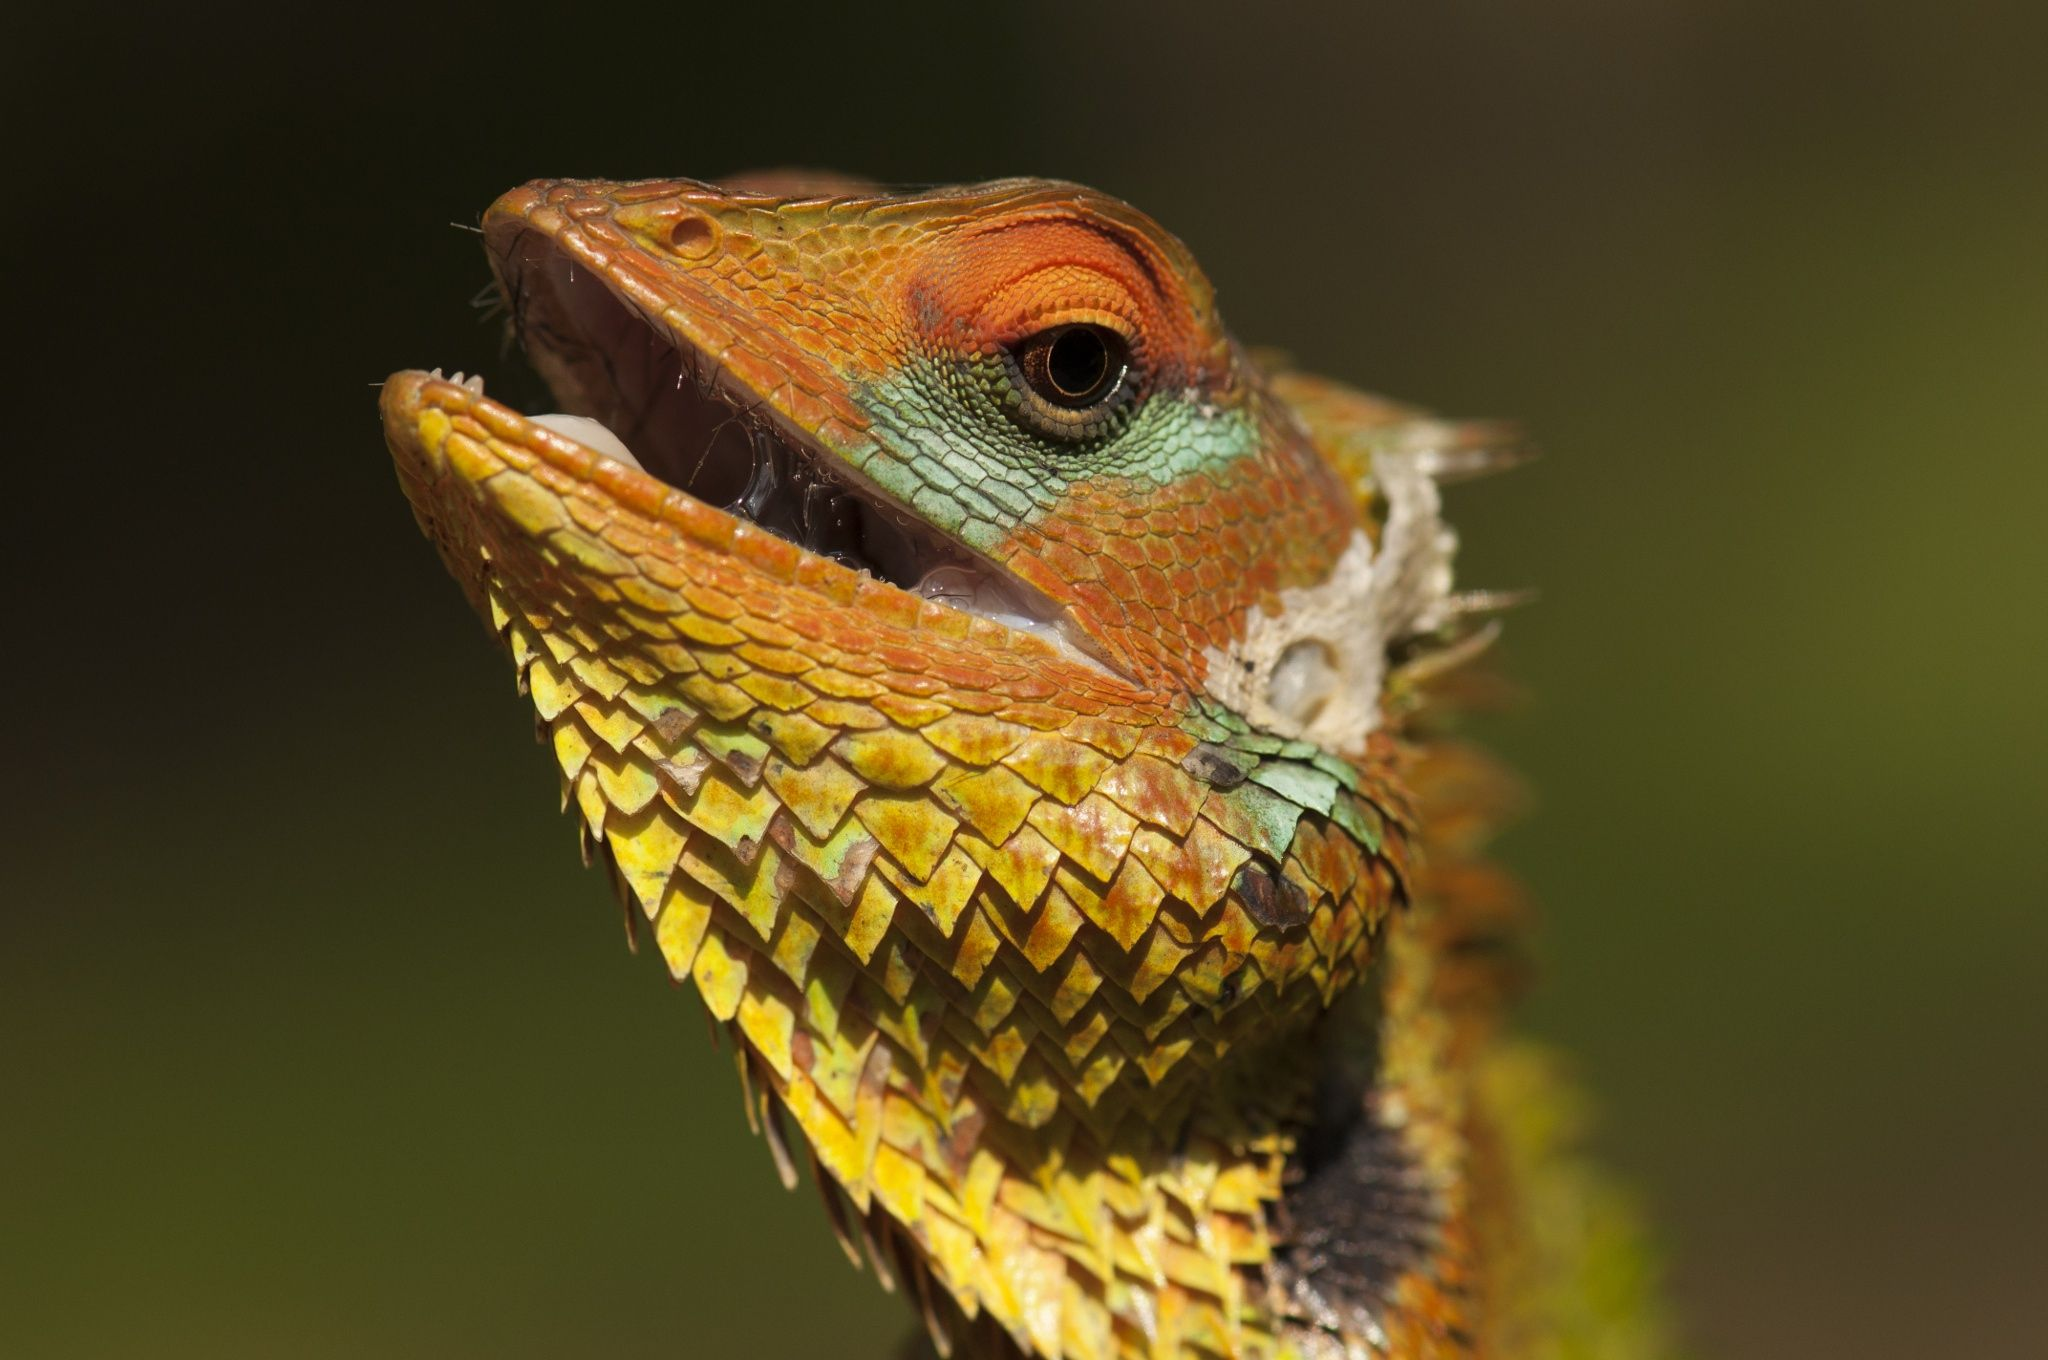 Green garden lizard by Camilla Korsnes on 500px | Reptiles ...